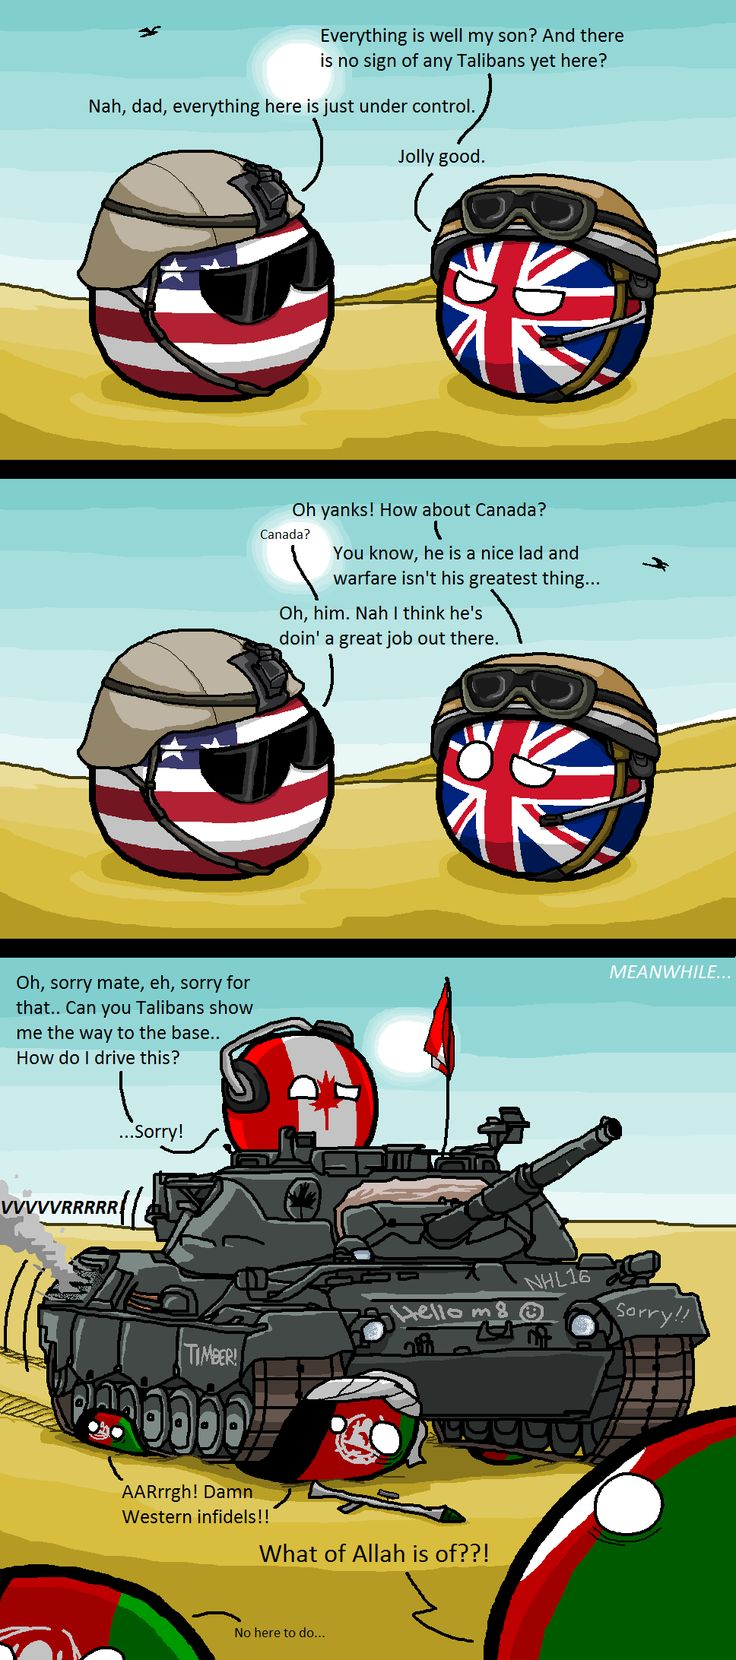 Canadian Reinforcement ( USA, UK, Canada ) by Kaliningrad General #polandball #countryball